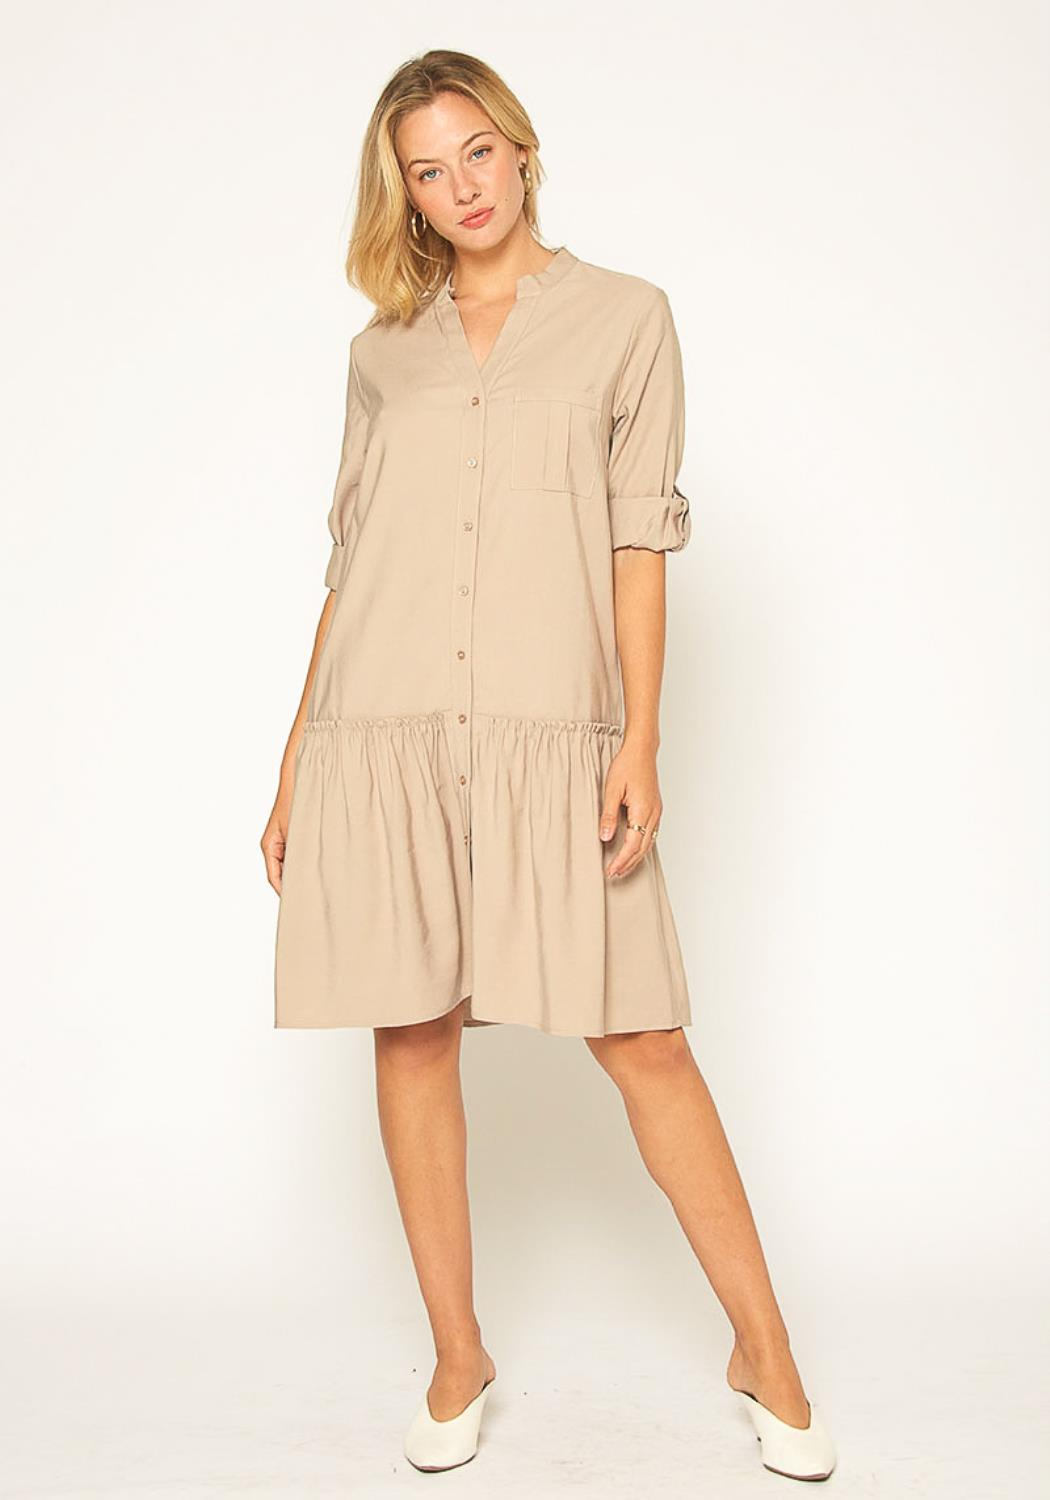 Pleione Button Up Tunic Shirt Dress